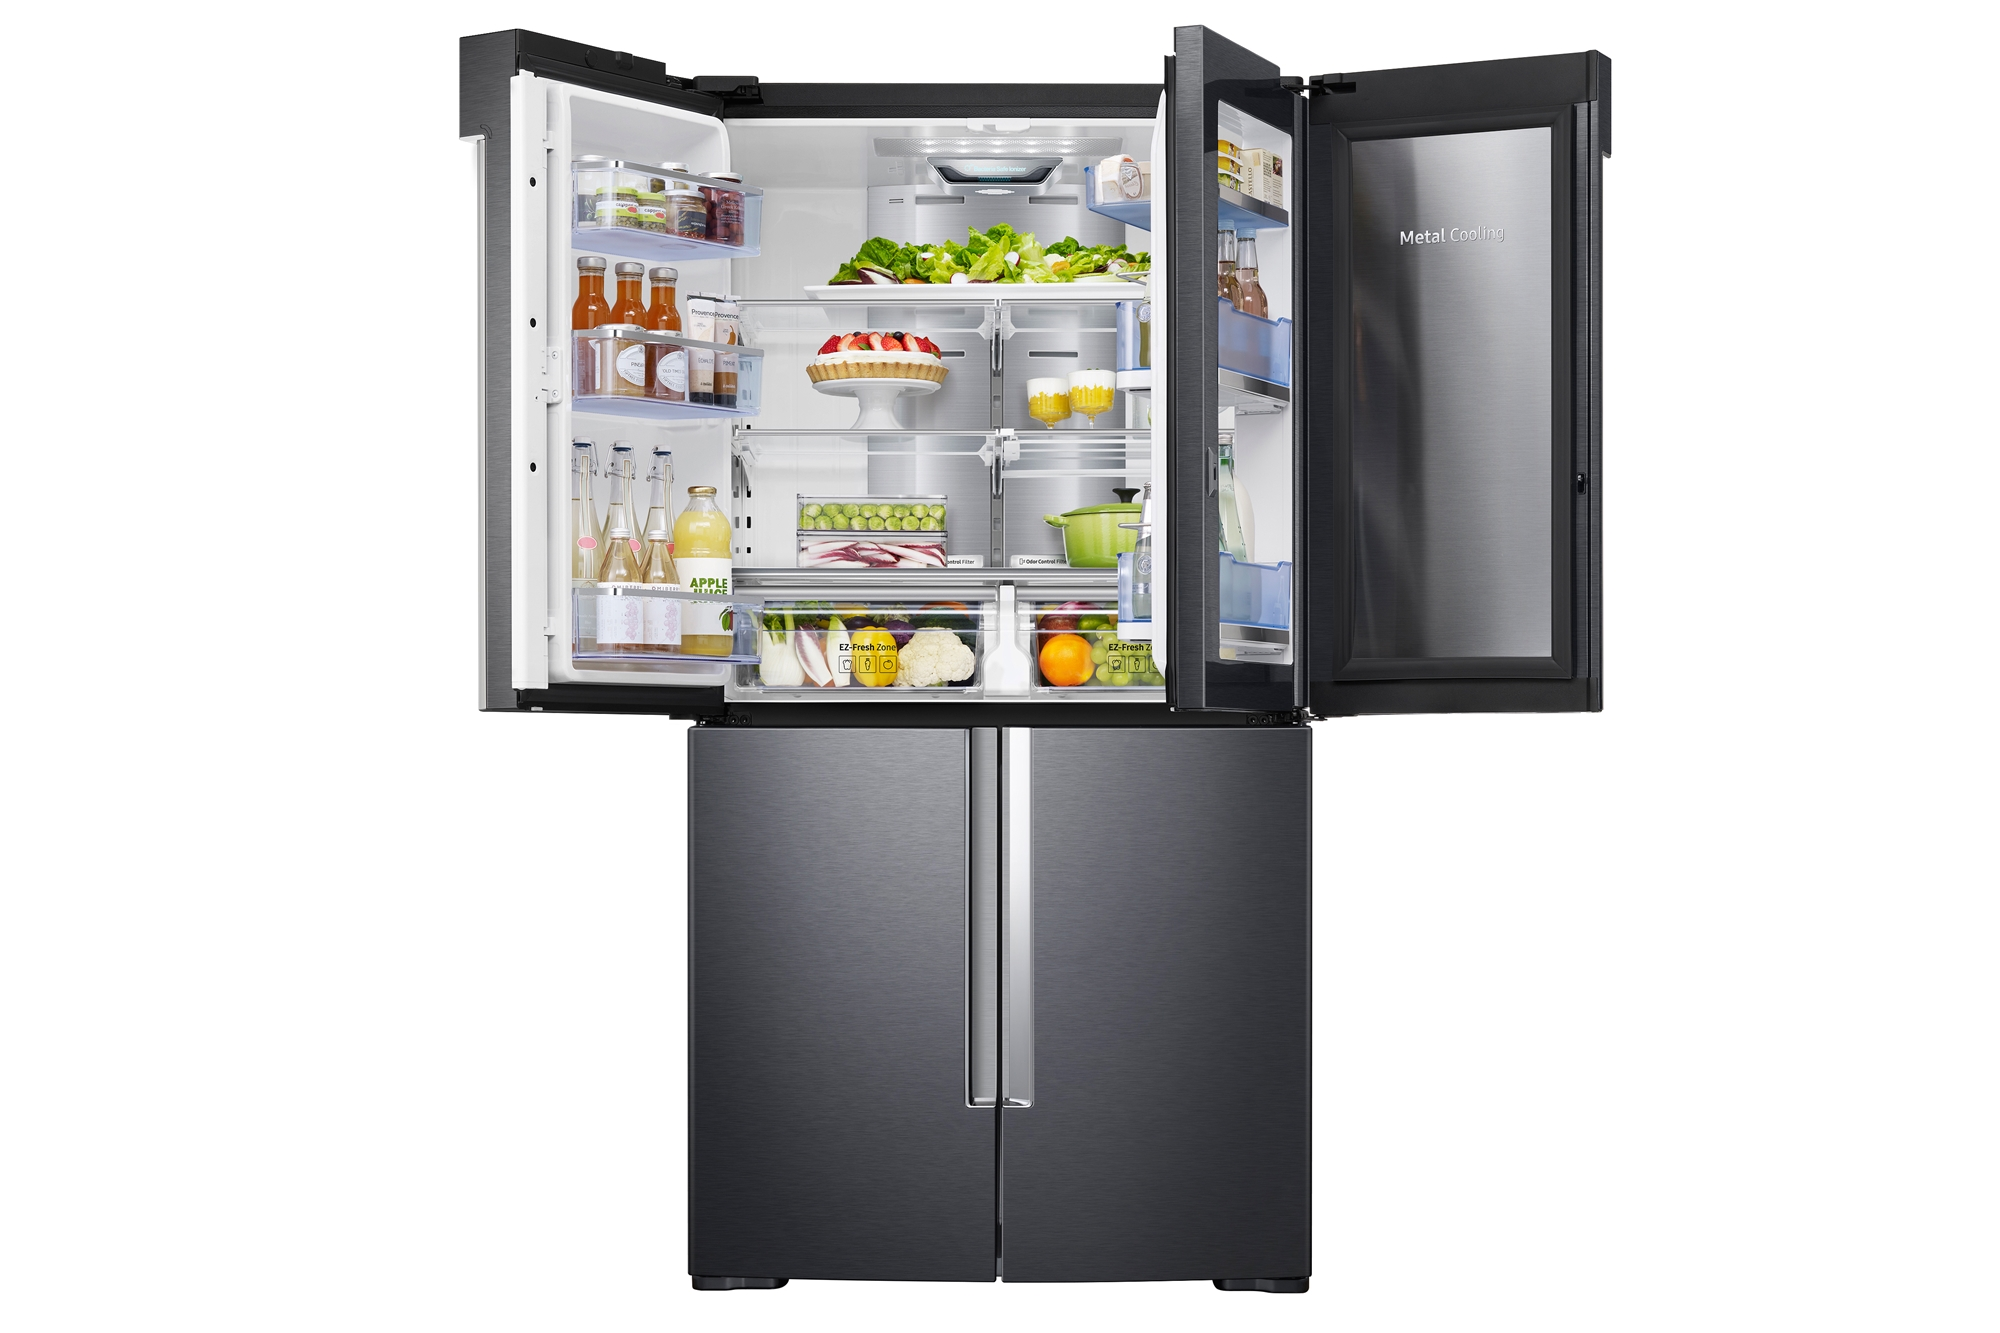 RF65M9371M1-SC_013_Front-Left-Door-Showcase-Incase-Half-Open-With-Food_Honed-Black.jpg